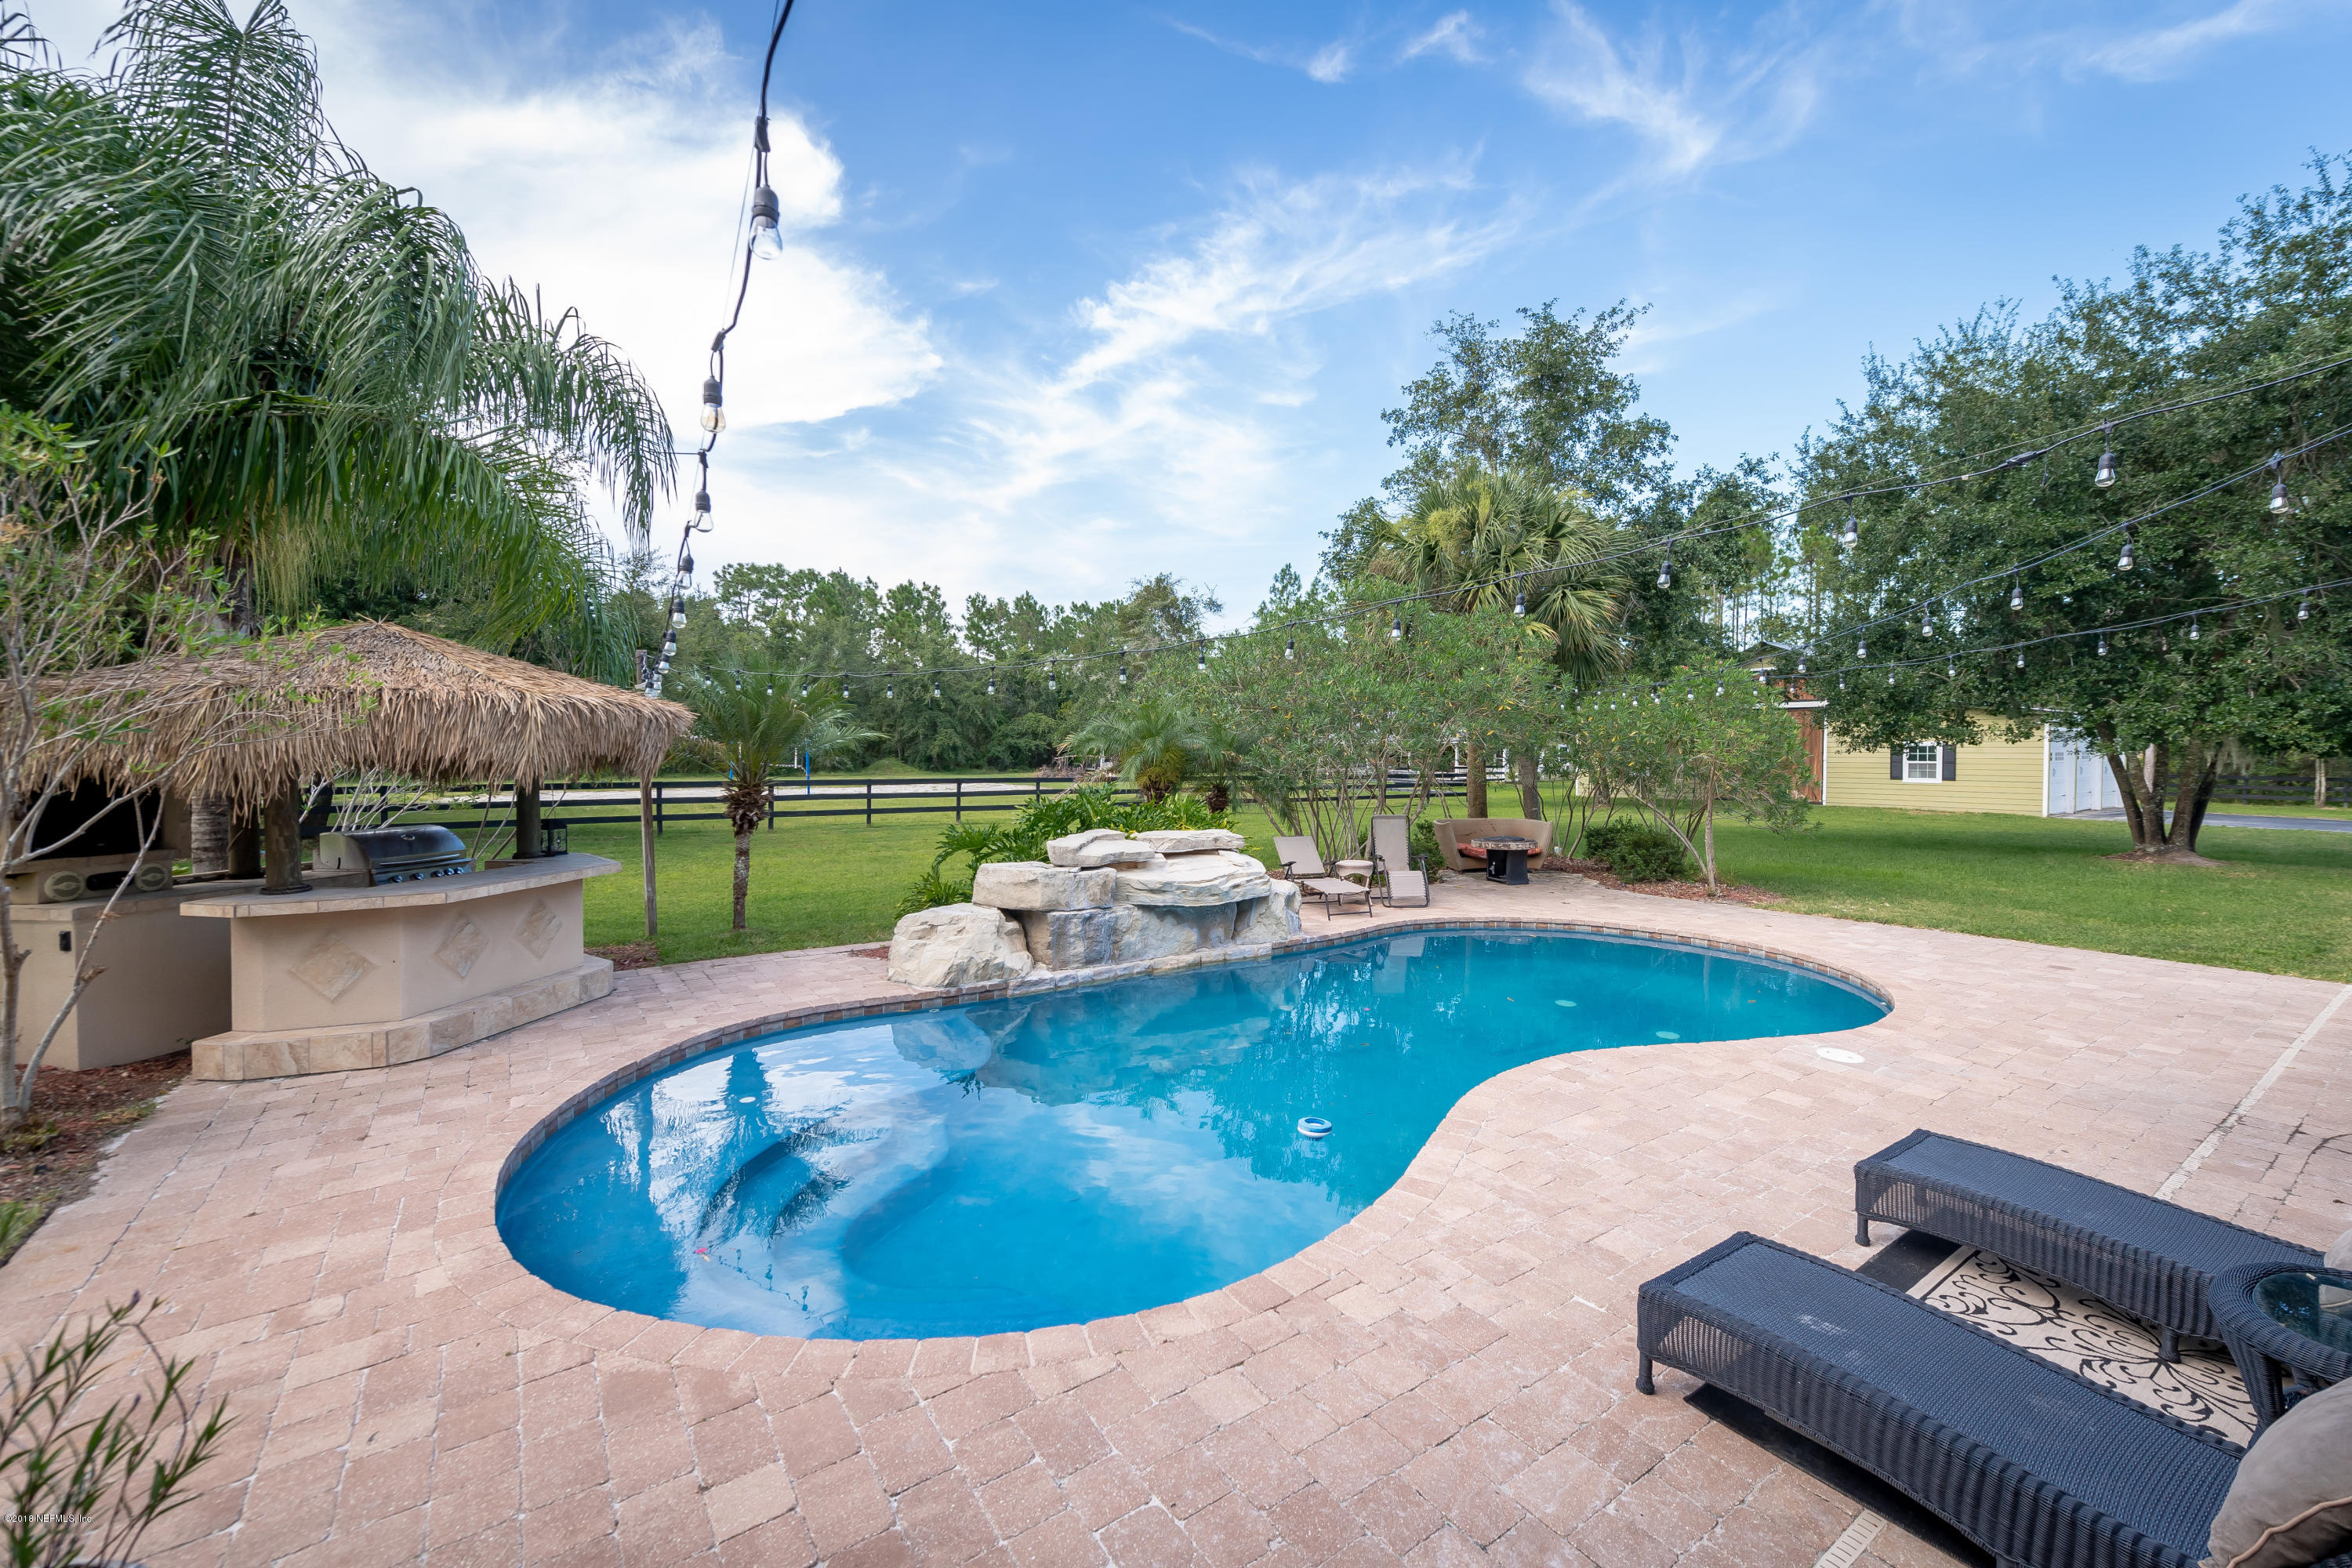 112 PICOLATA FOREST, ST AUGUSTINE, FLORIDA 32092, 4 Bedrooms Bedrooms, ,4 BathroomsBathrooms,Residential - single family,For sale,PICOLATA FOREST,954244